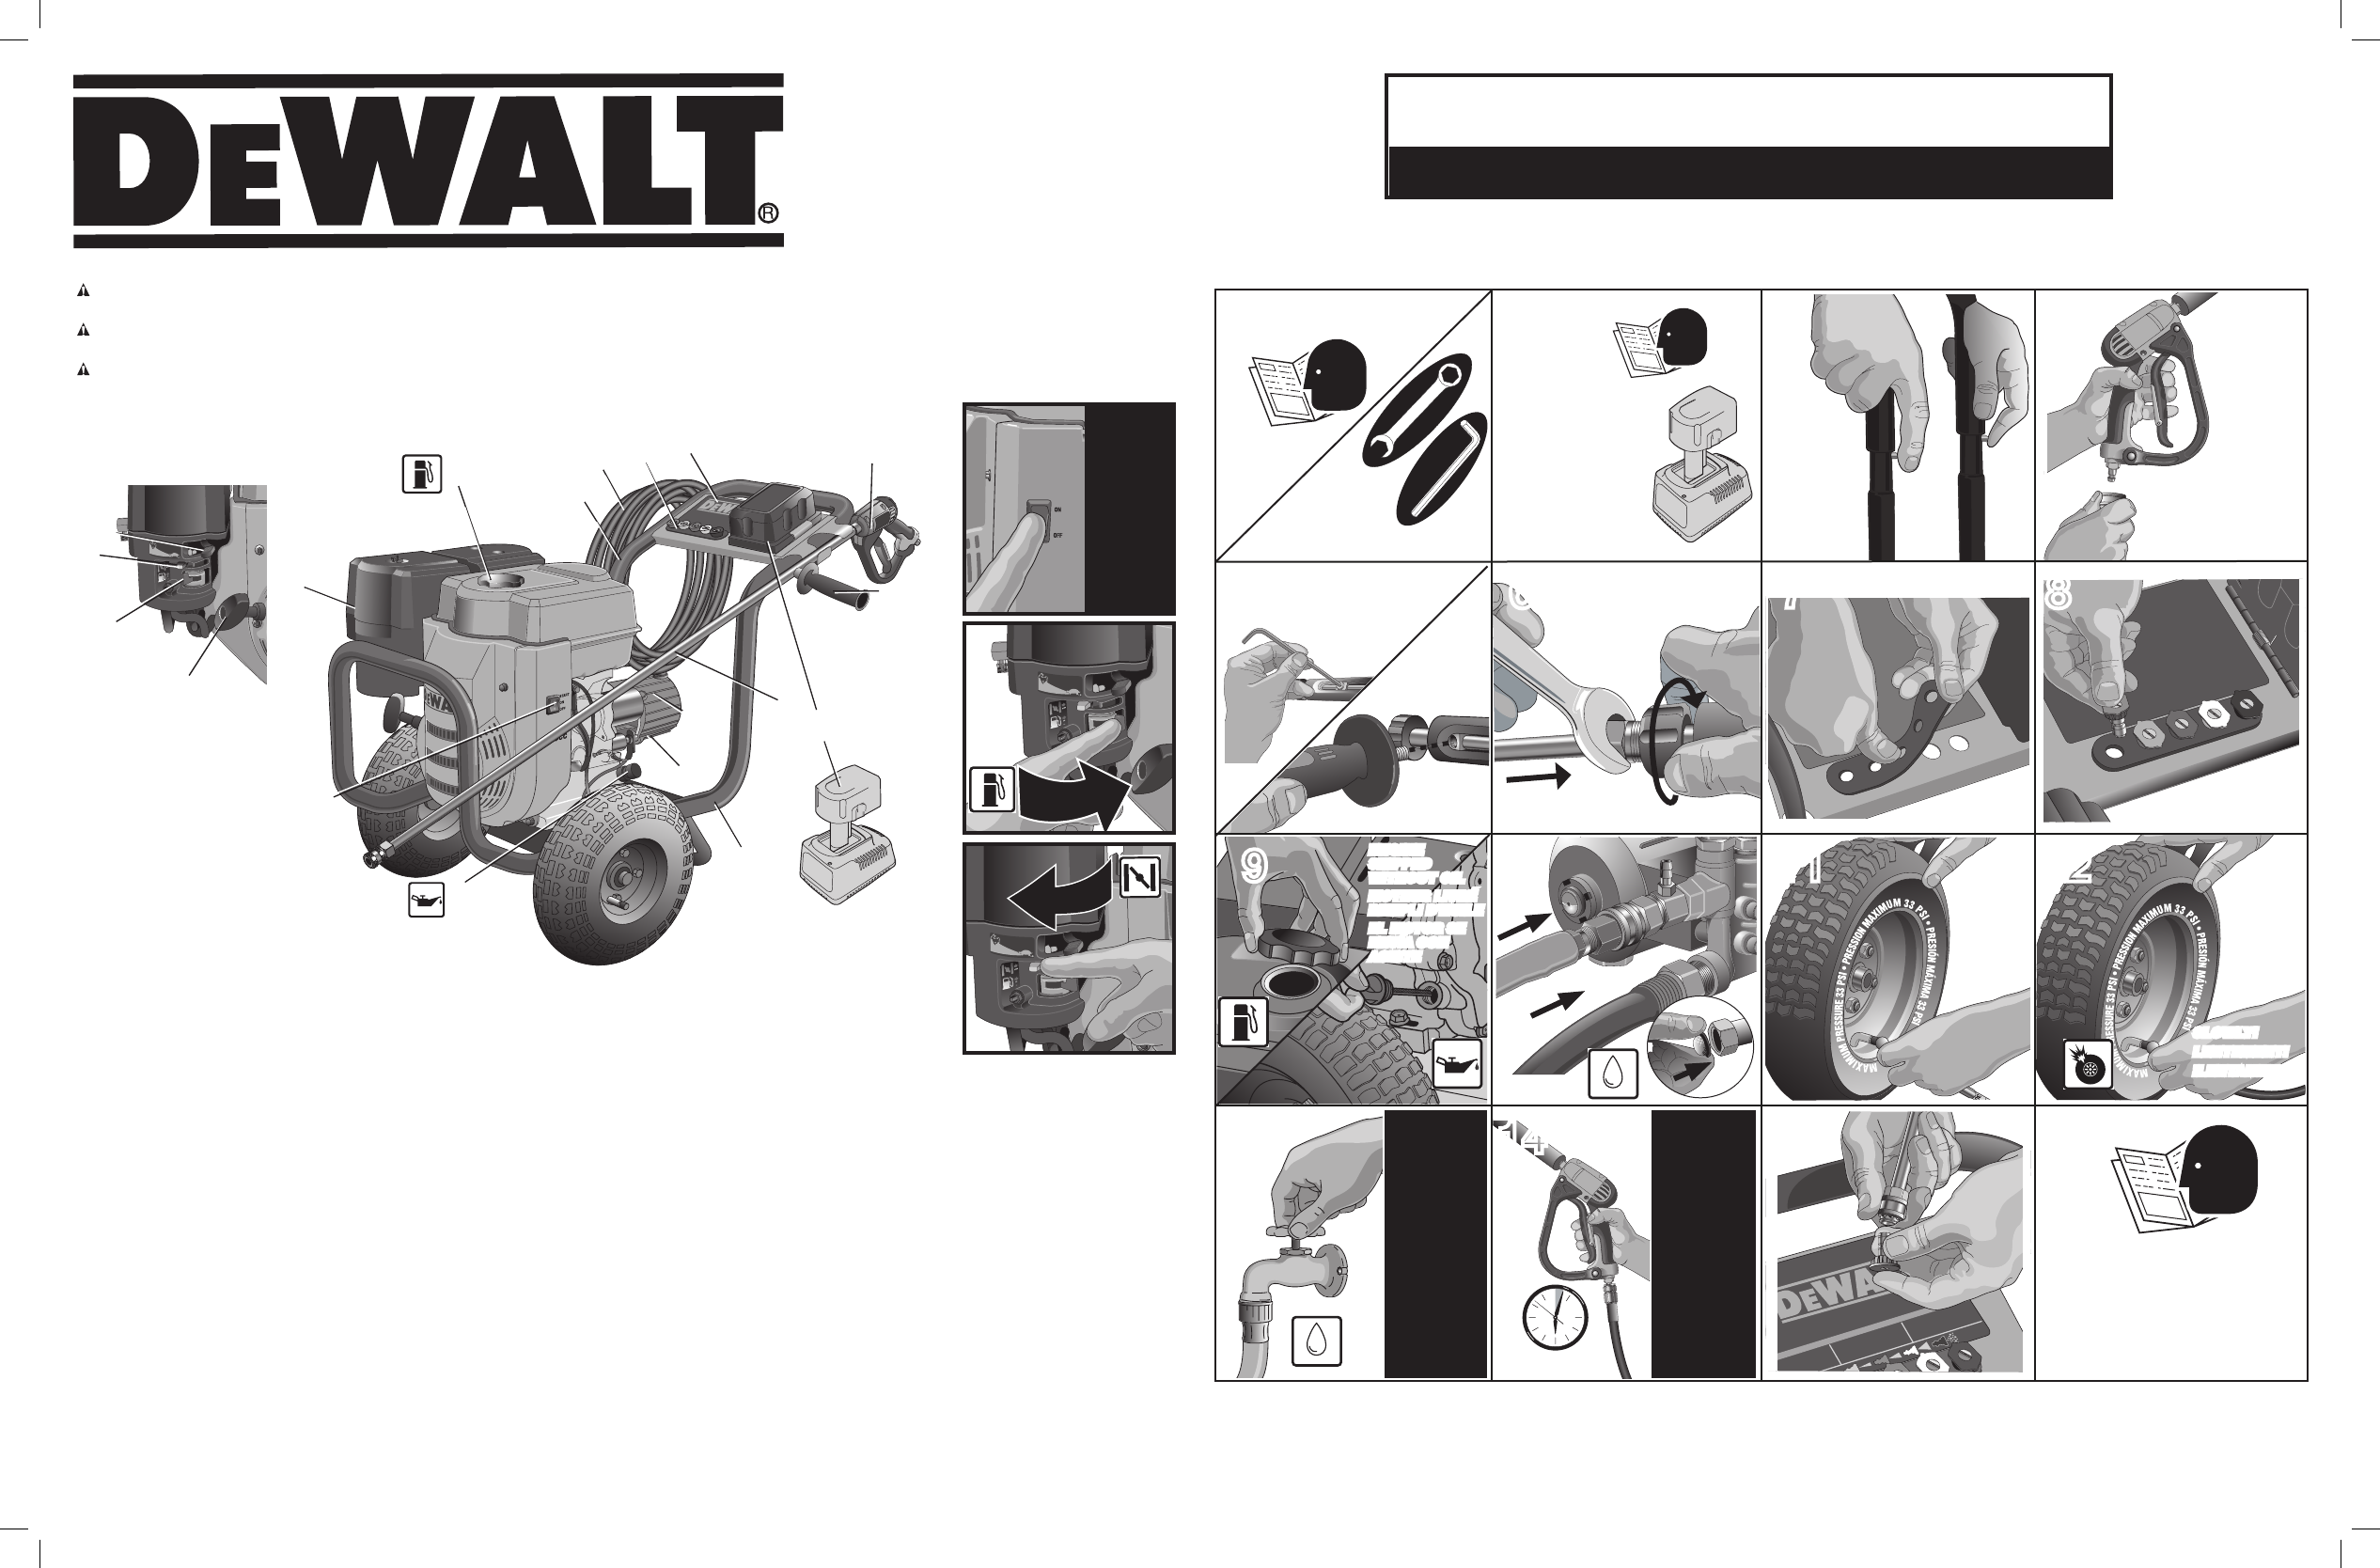 dewalt pressure washer dpe3800 user guide manualsonline com